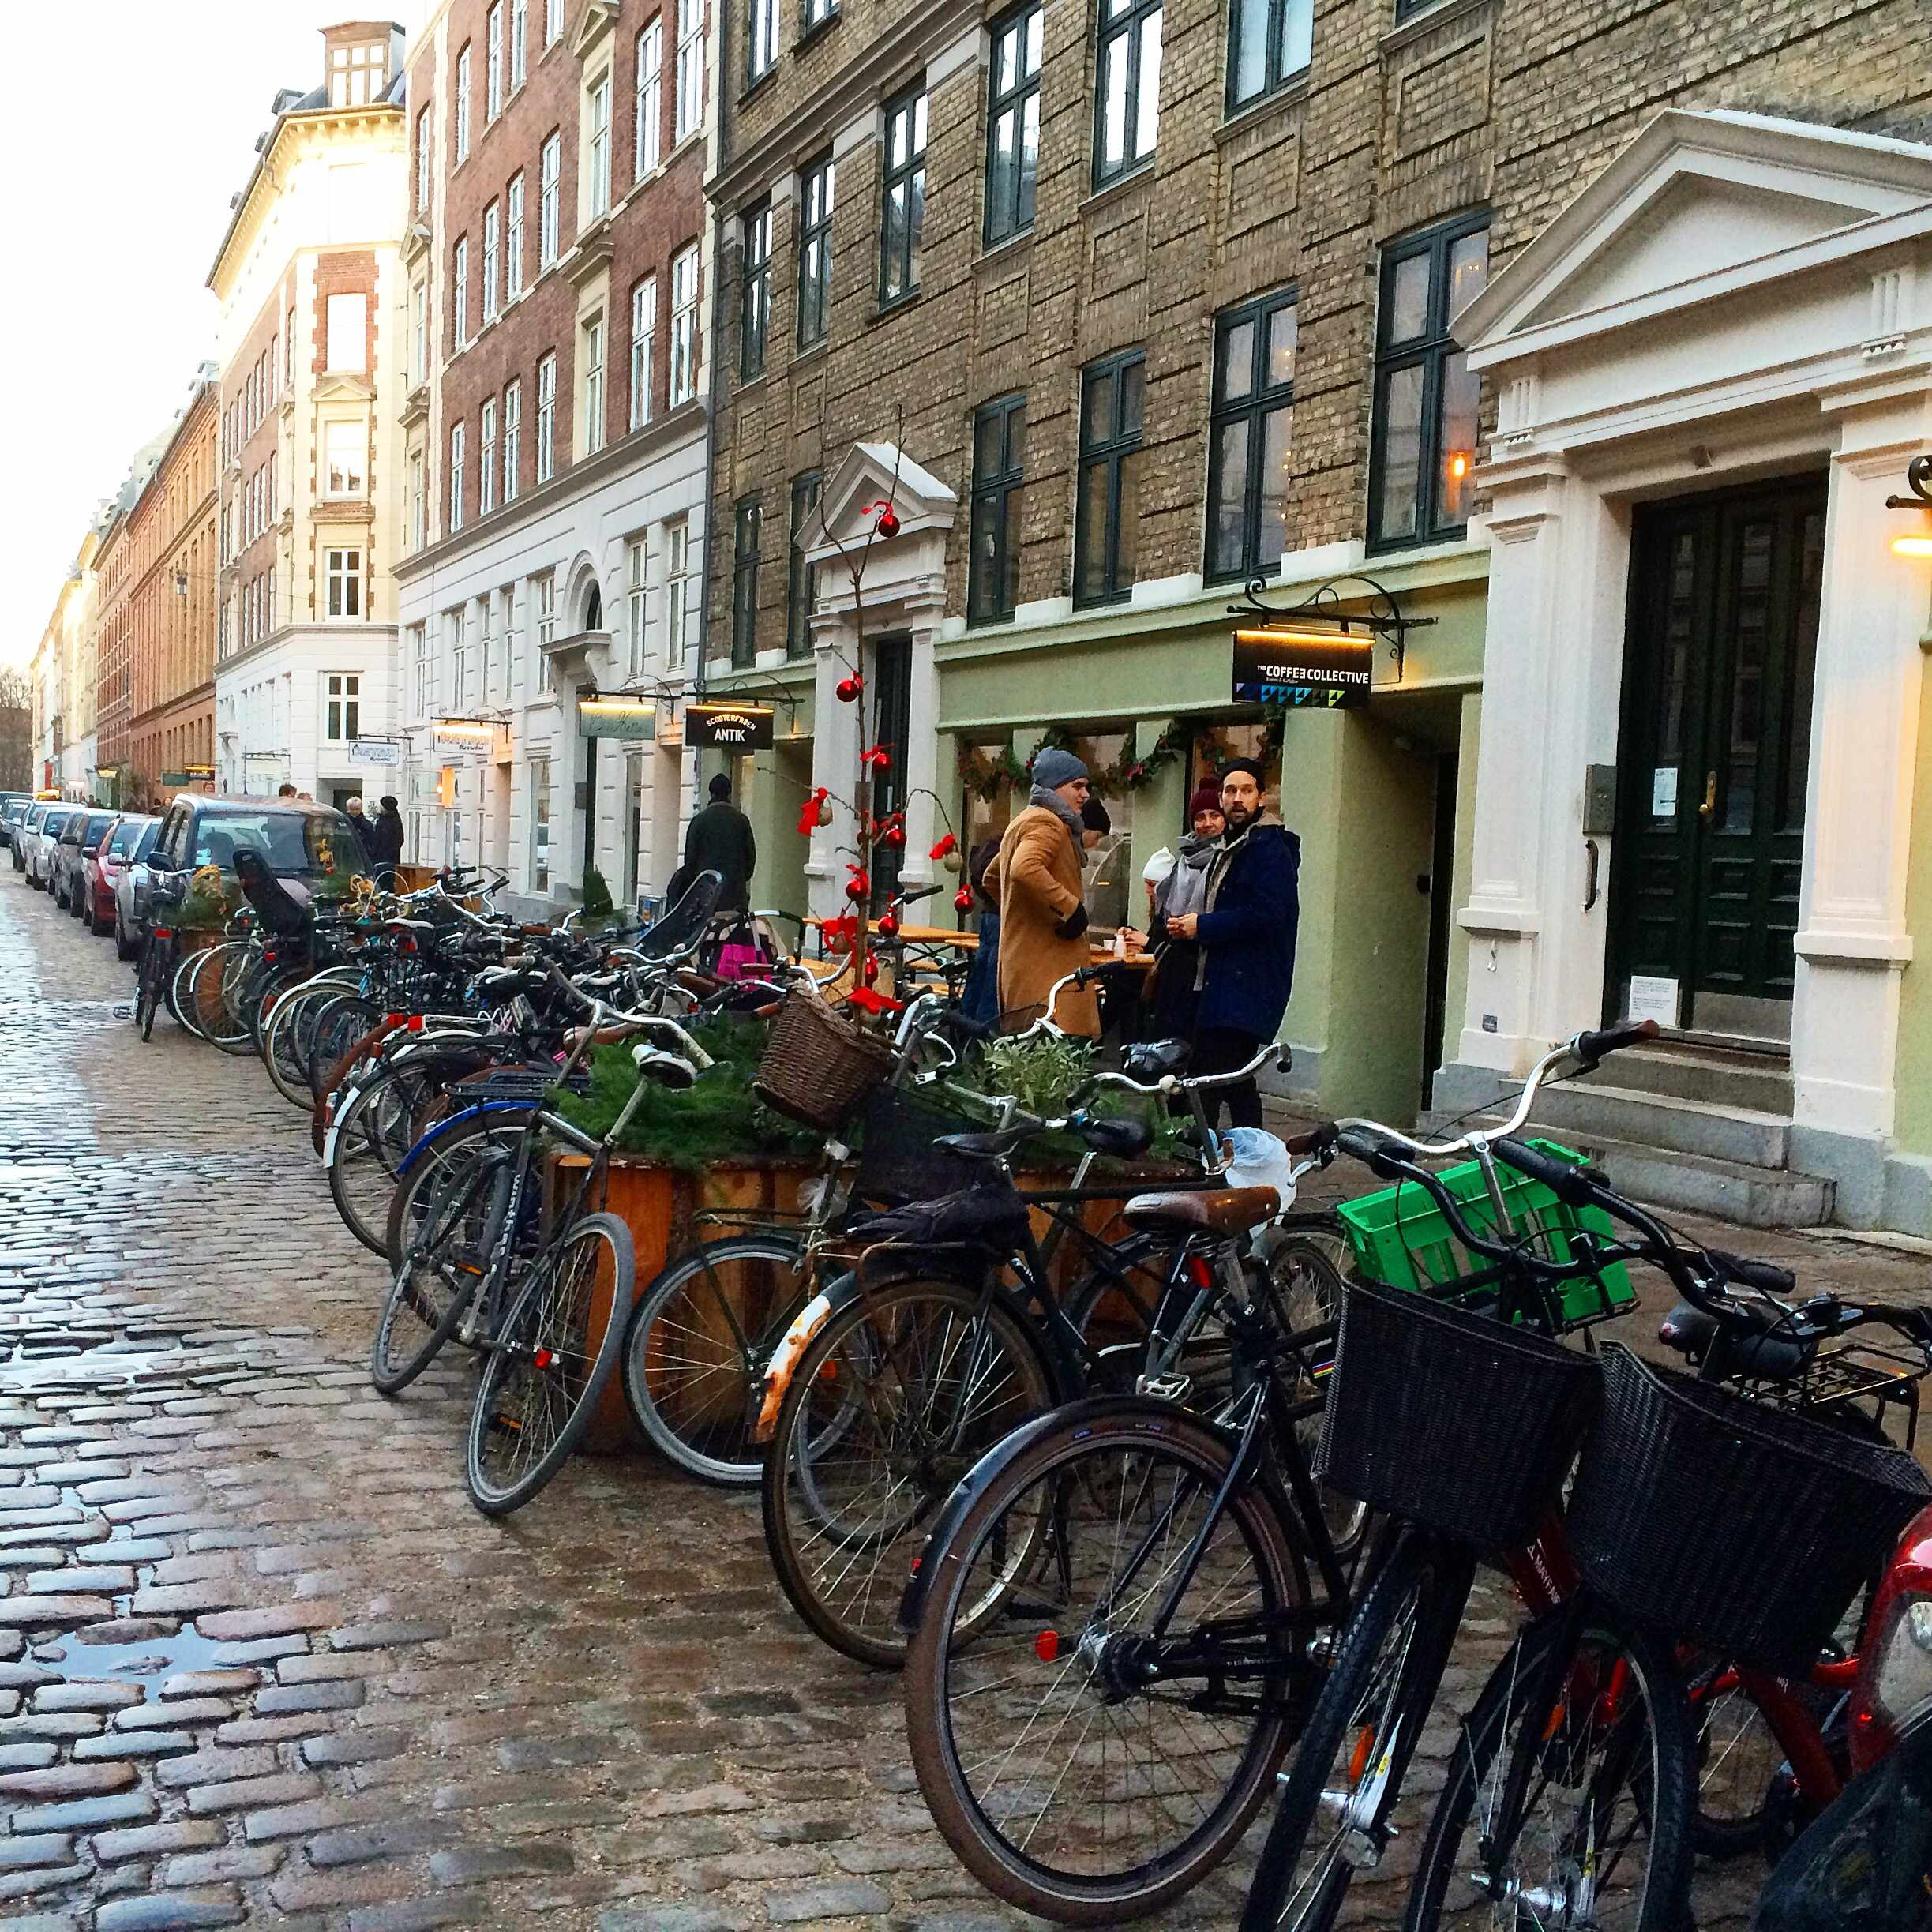 Lots of bikes lined up outside a coffee shop and people drinking coffee